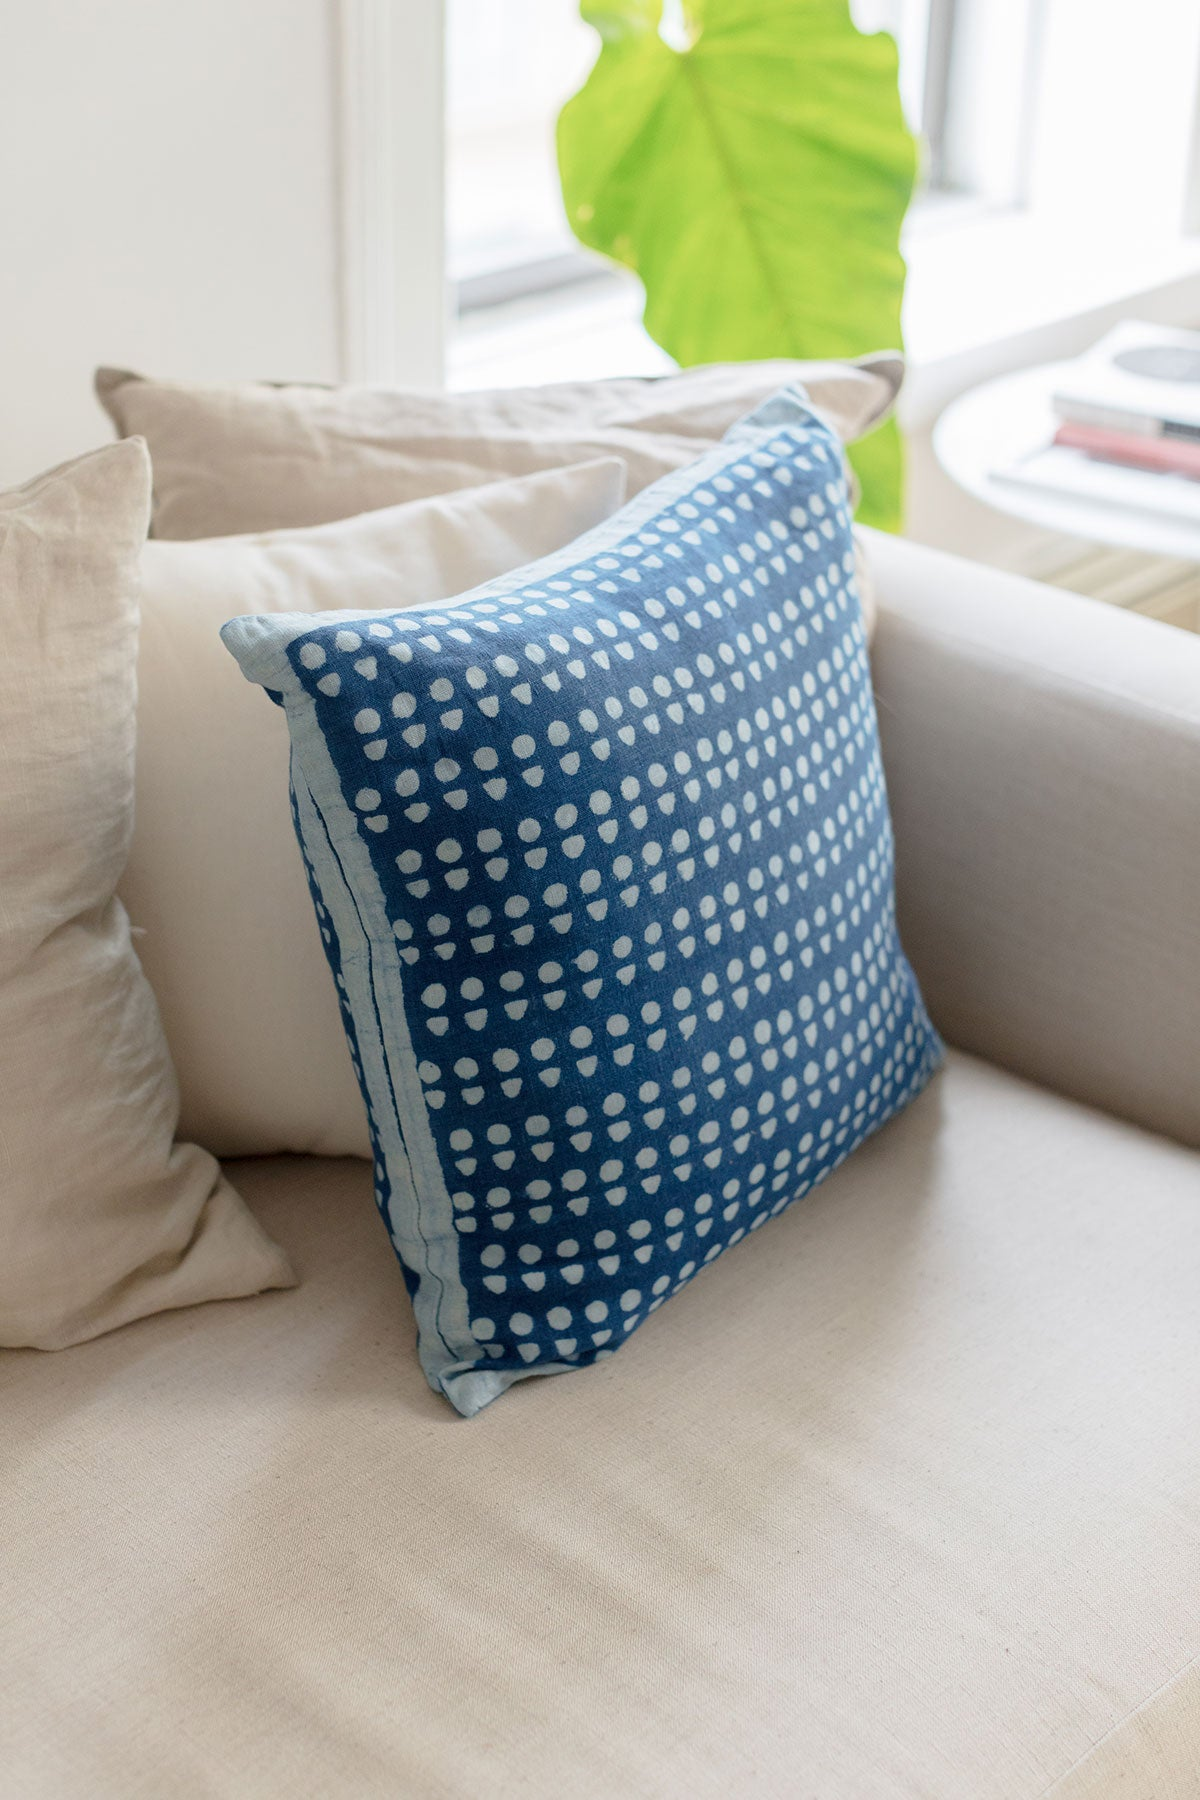 Hand block printed indigo accent throw pillow/cushion cover. Hand dyed with natural indigo and printed with a repeat geometric pattern.